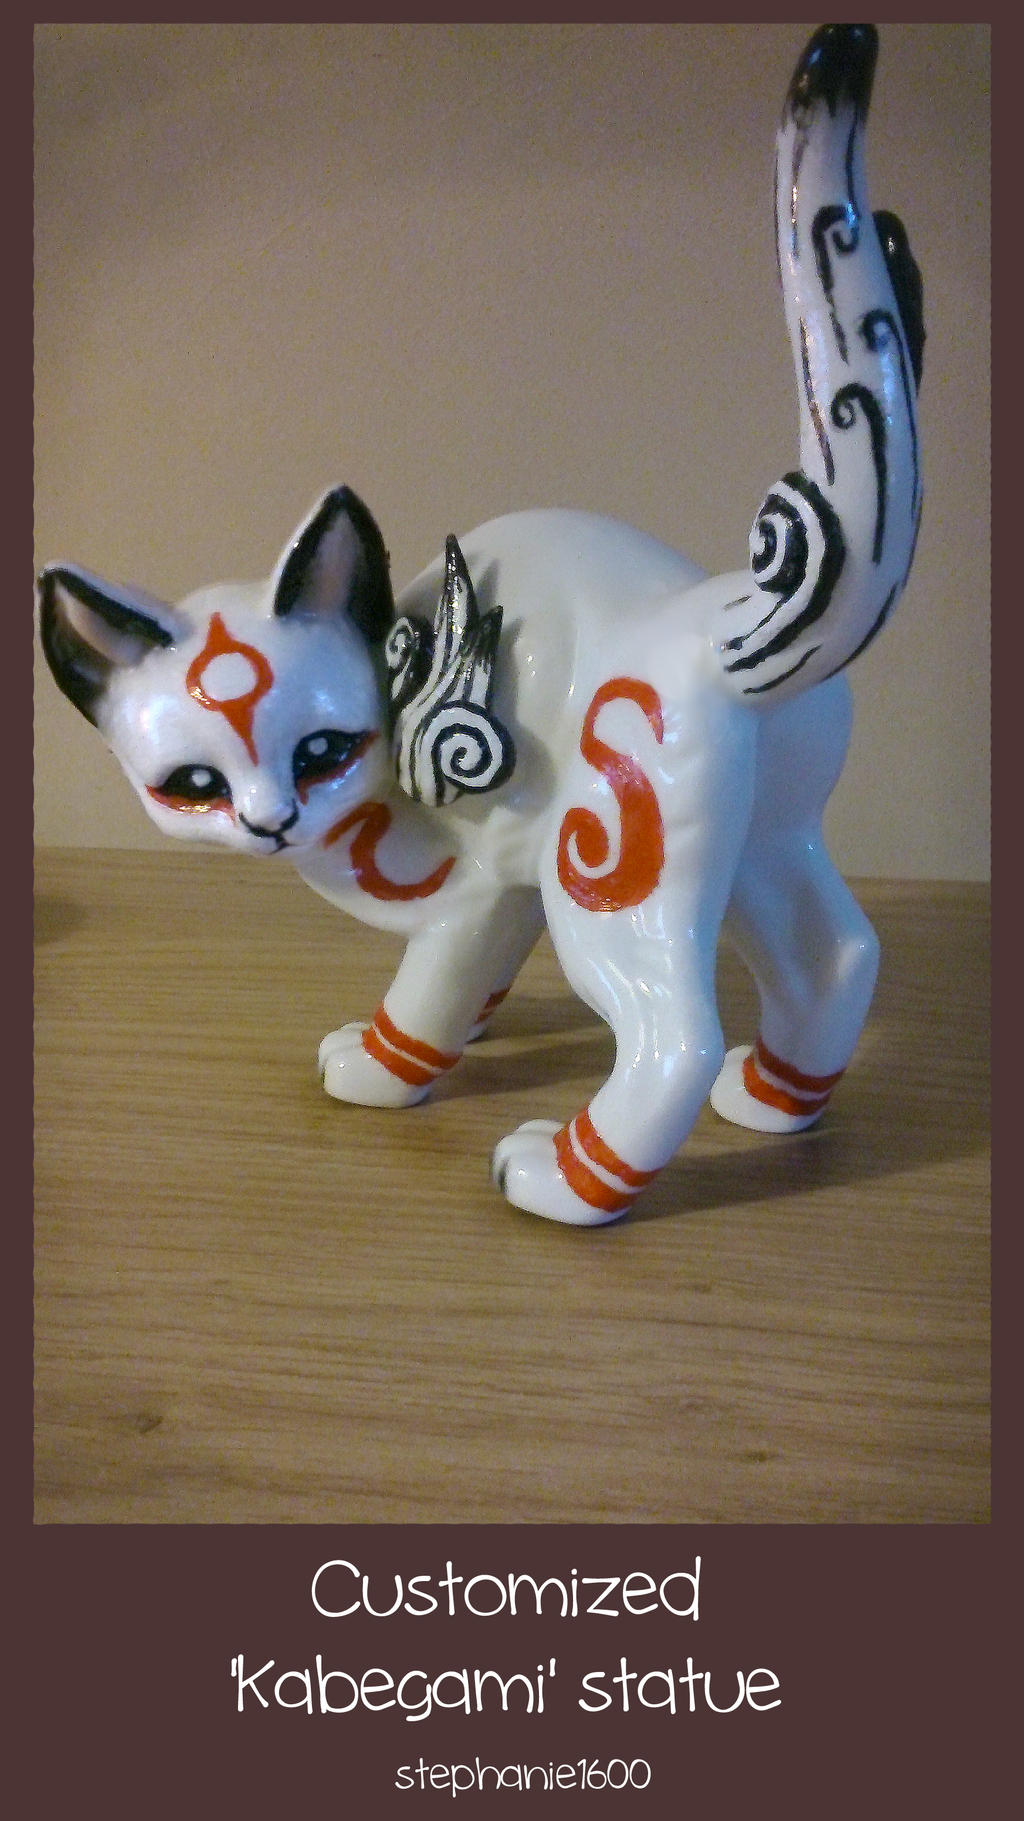 *SOLD* Customized 'Kabegami' statue by stephanie1600